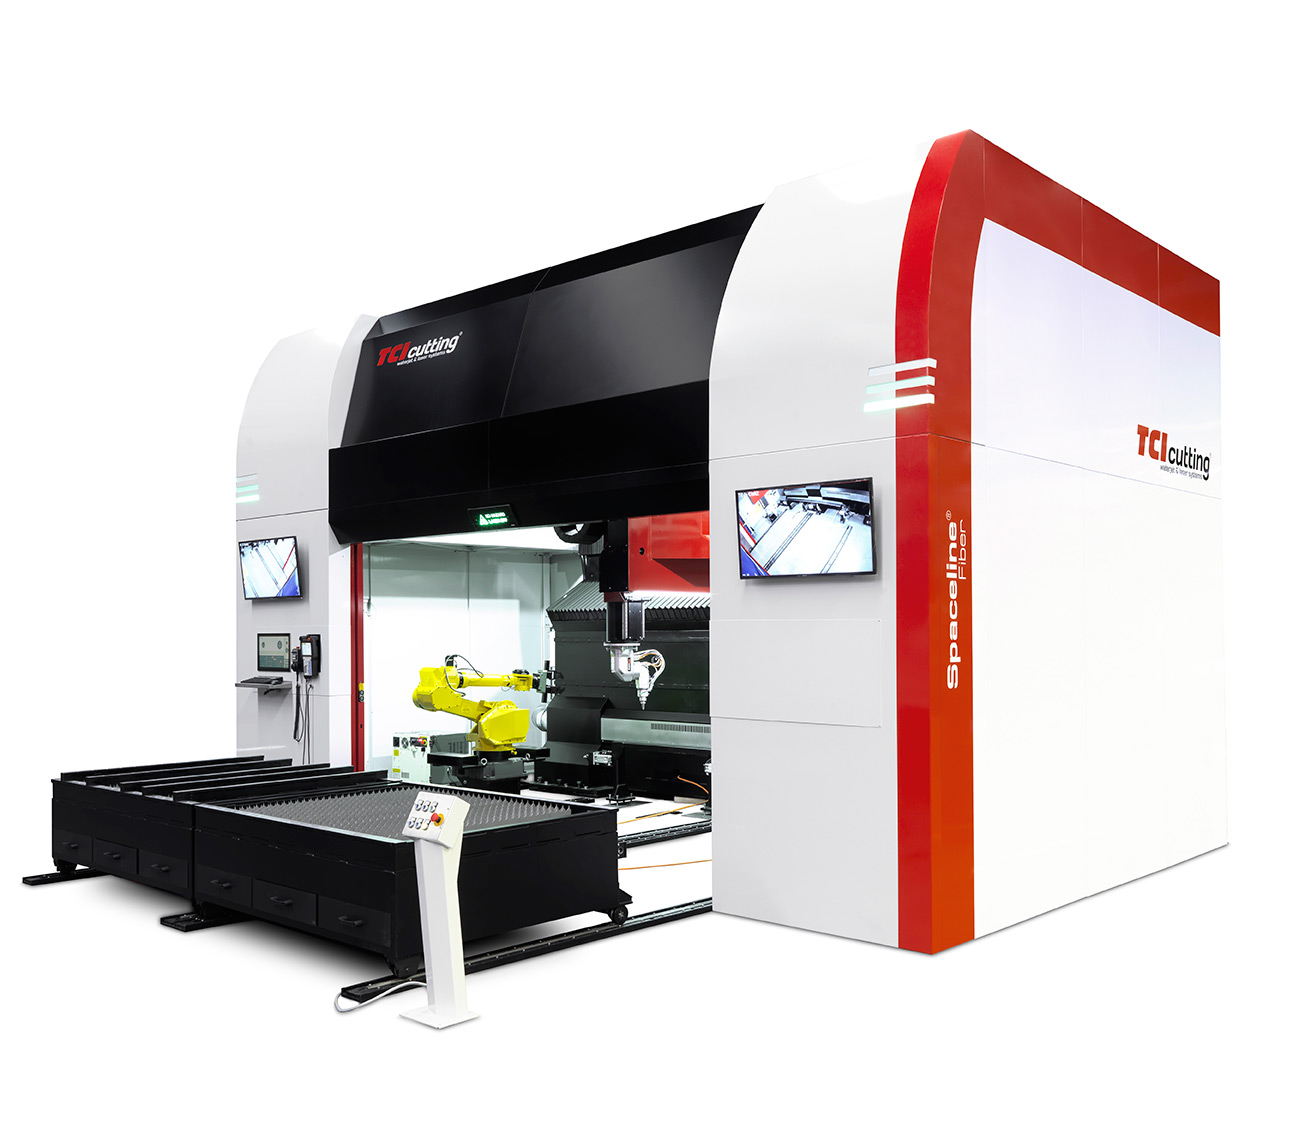 TCI Cutting Spaceline Fiber 3D cutting laser machine.